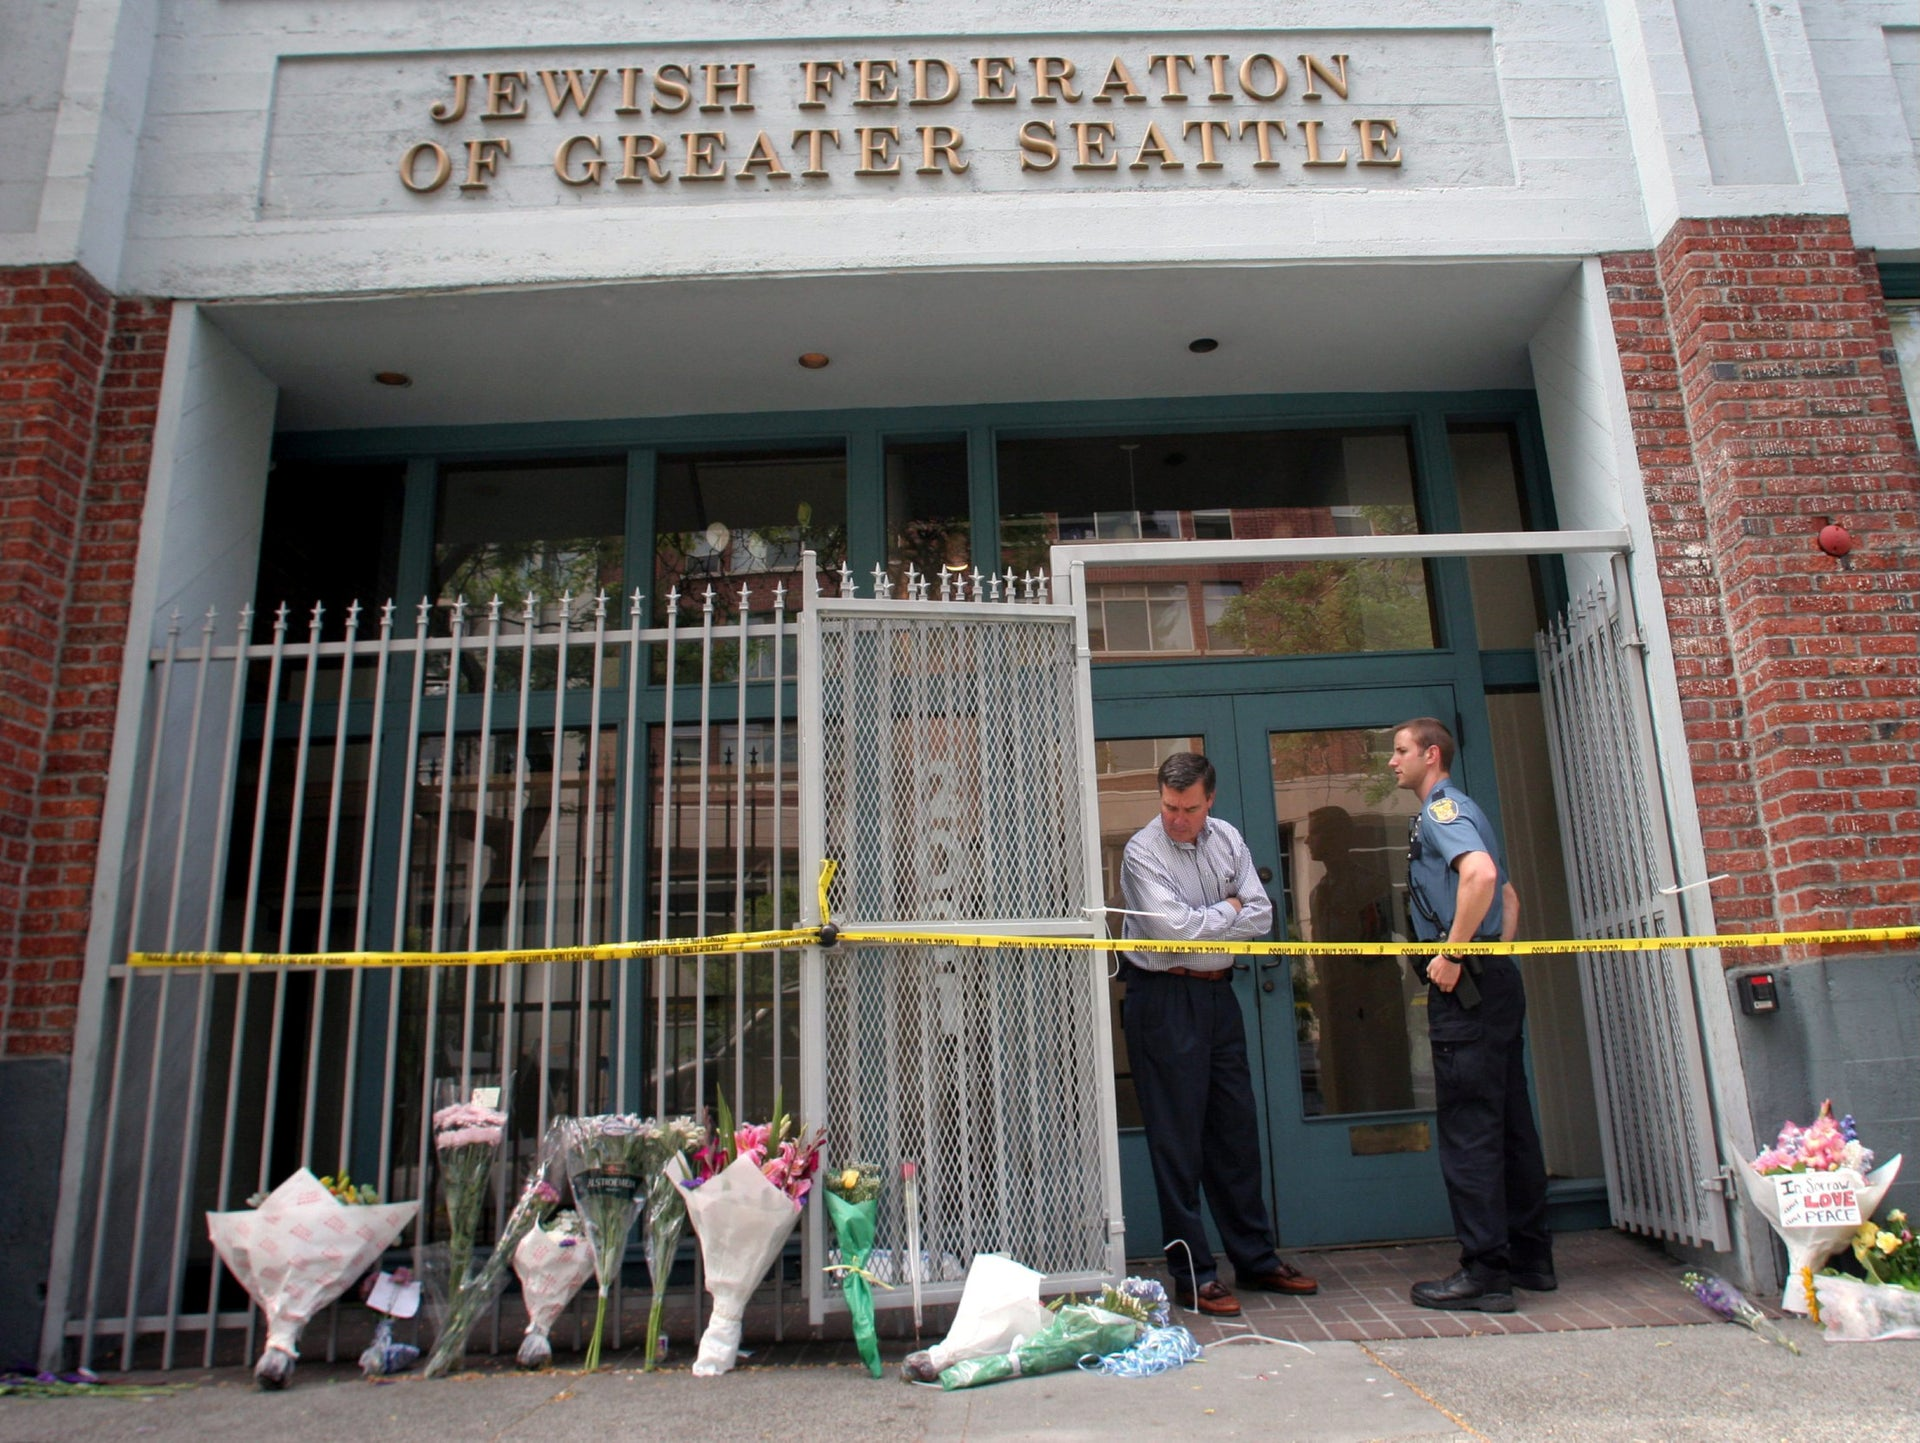 Seattle Police Chief Gil Kerlikowske, left, looks at flowers left by passersby at the Jewish Federation Building in Seattle, Saturday, July 29, 2006.